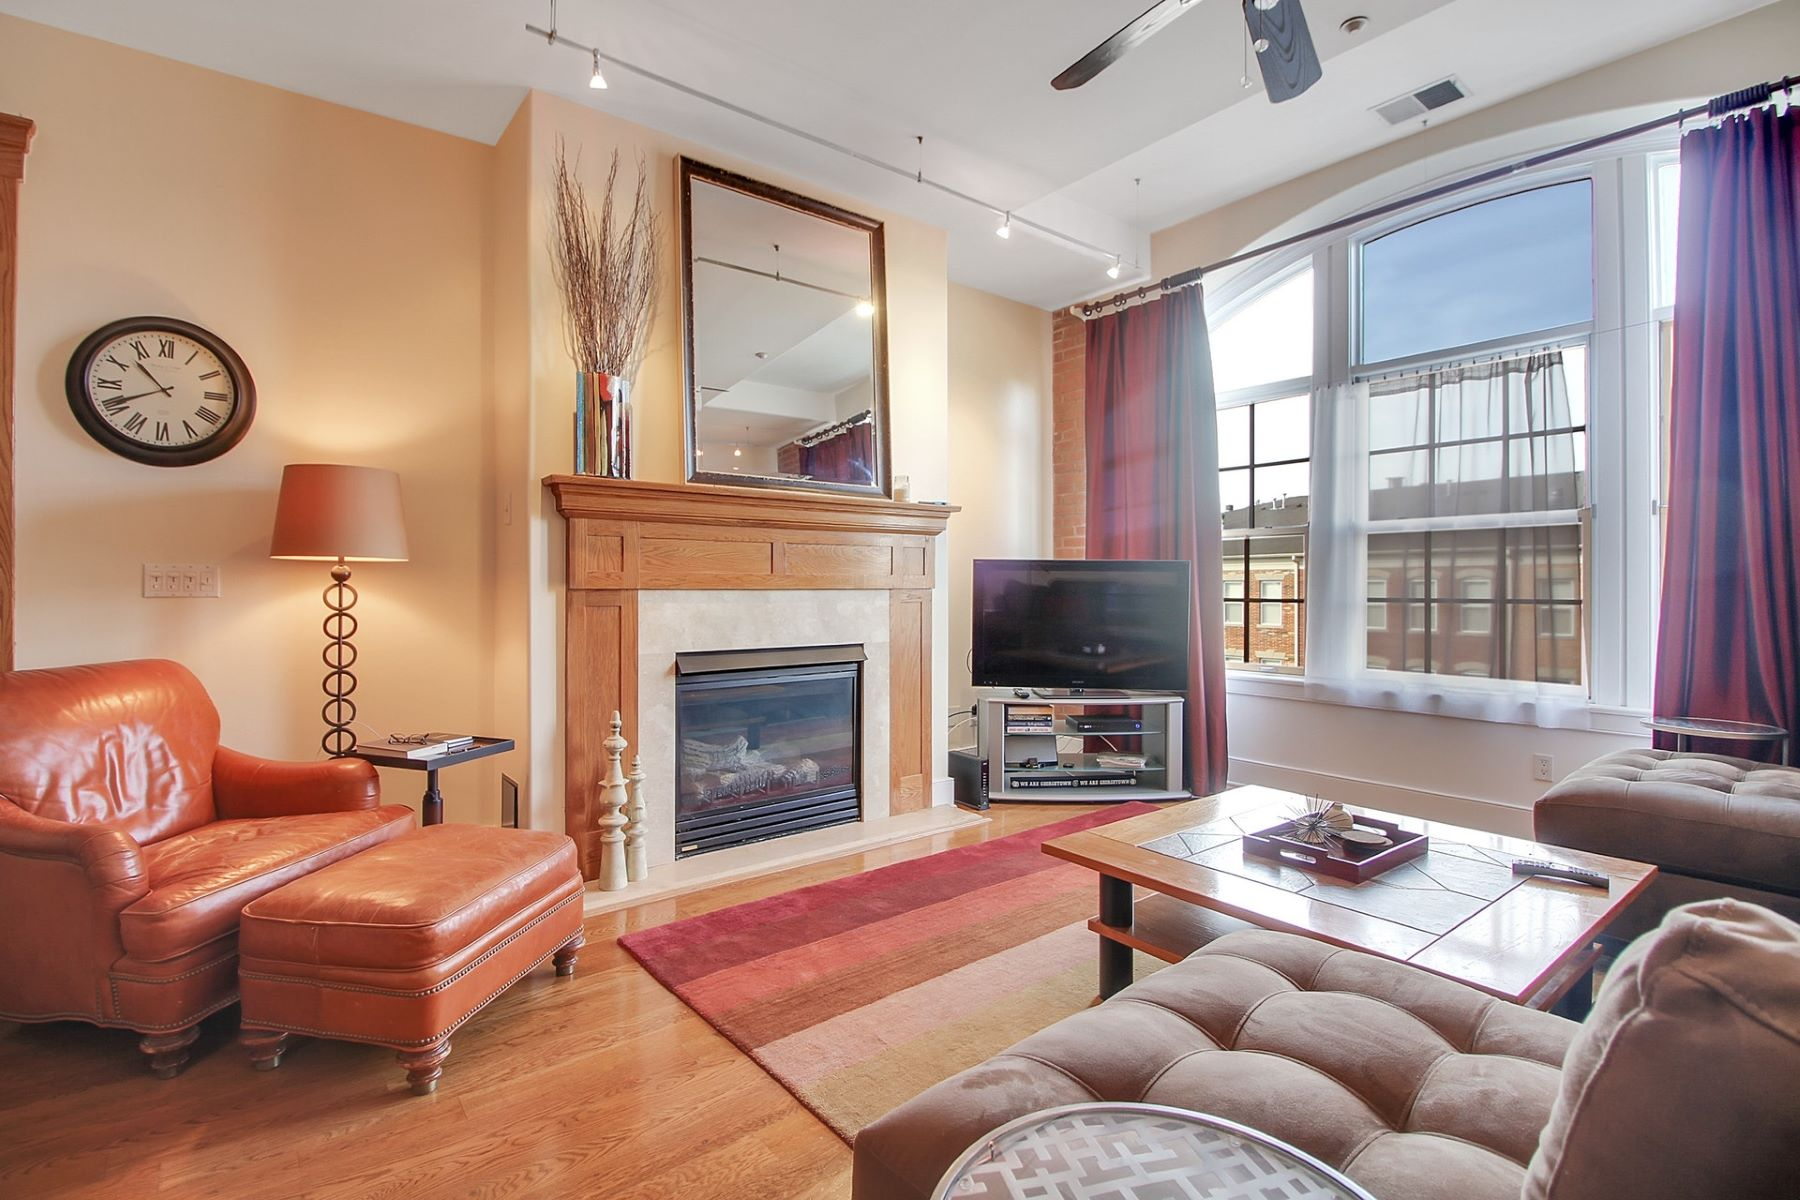 Apartment for Rent at Your Passport to Luxury! The Sugar House 174 Washington Street #4E, Jersey City, New Jersey 07302 United States